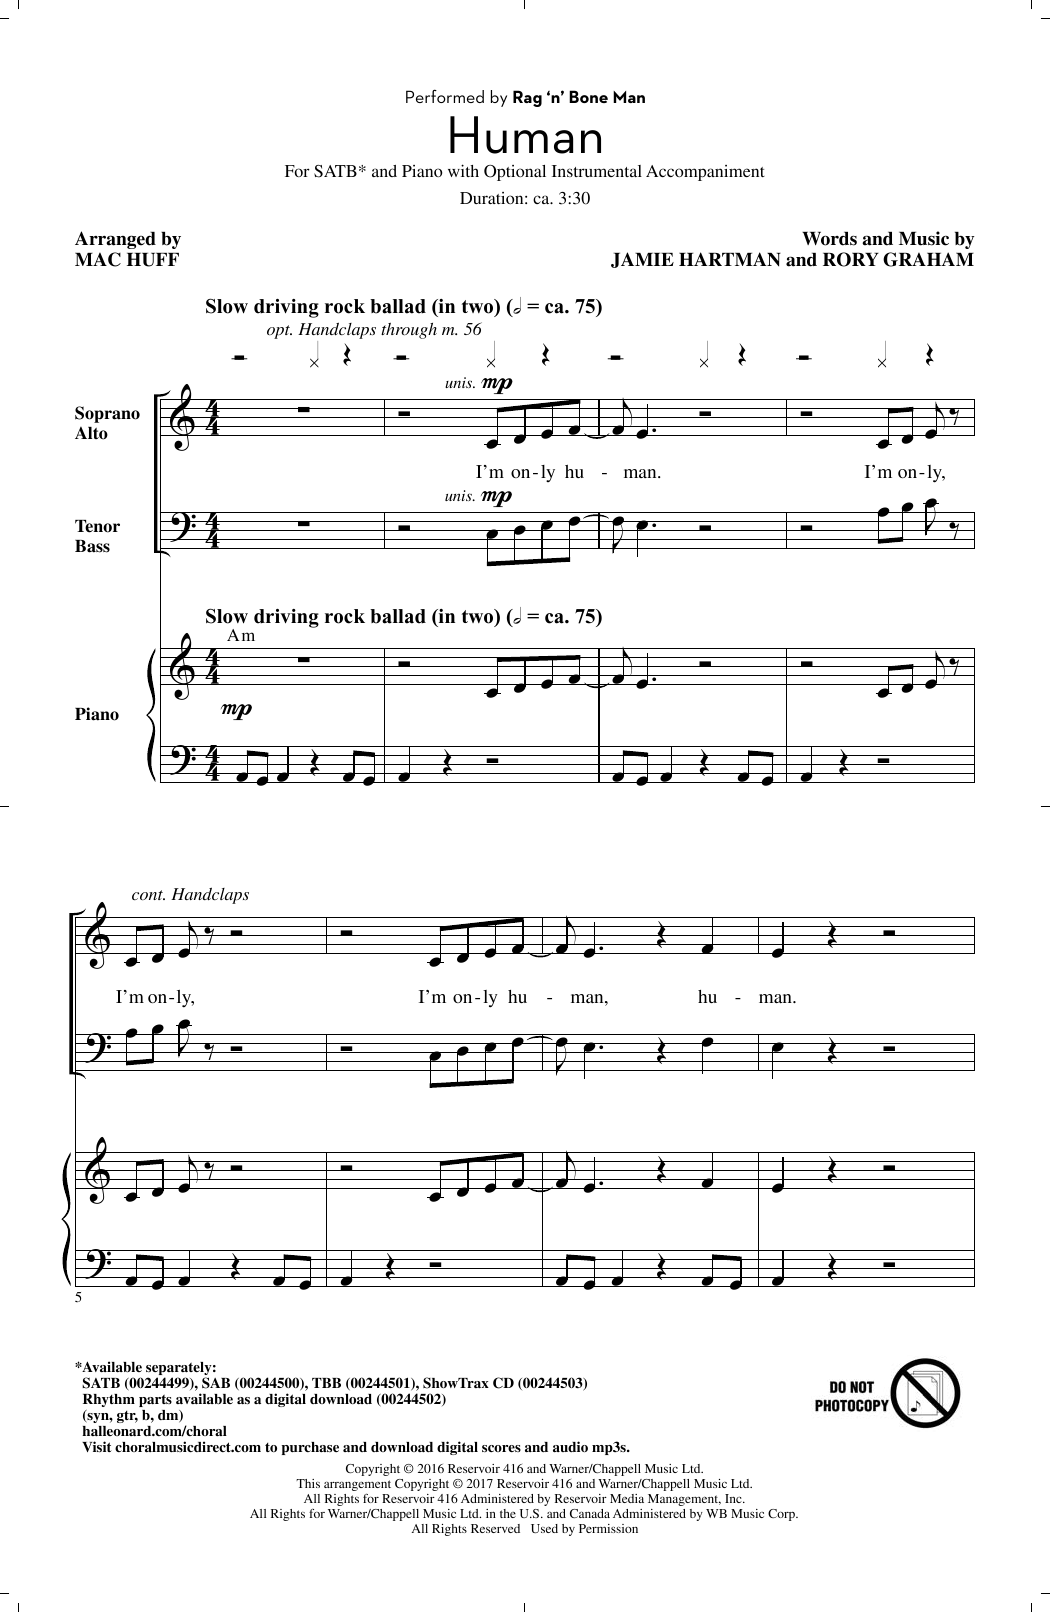 Rag'n'Bone Man Human (arr. Mac Huff) sheet music notes and chords. Download Printable PDF.